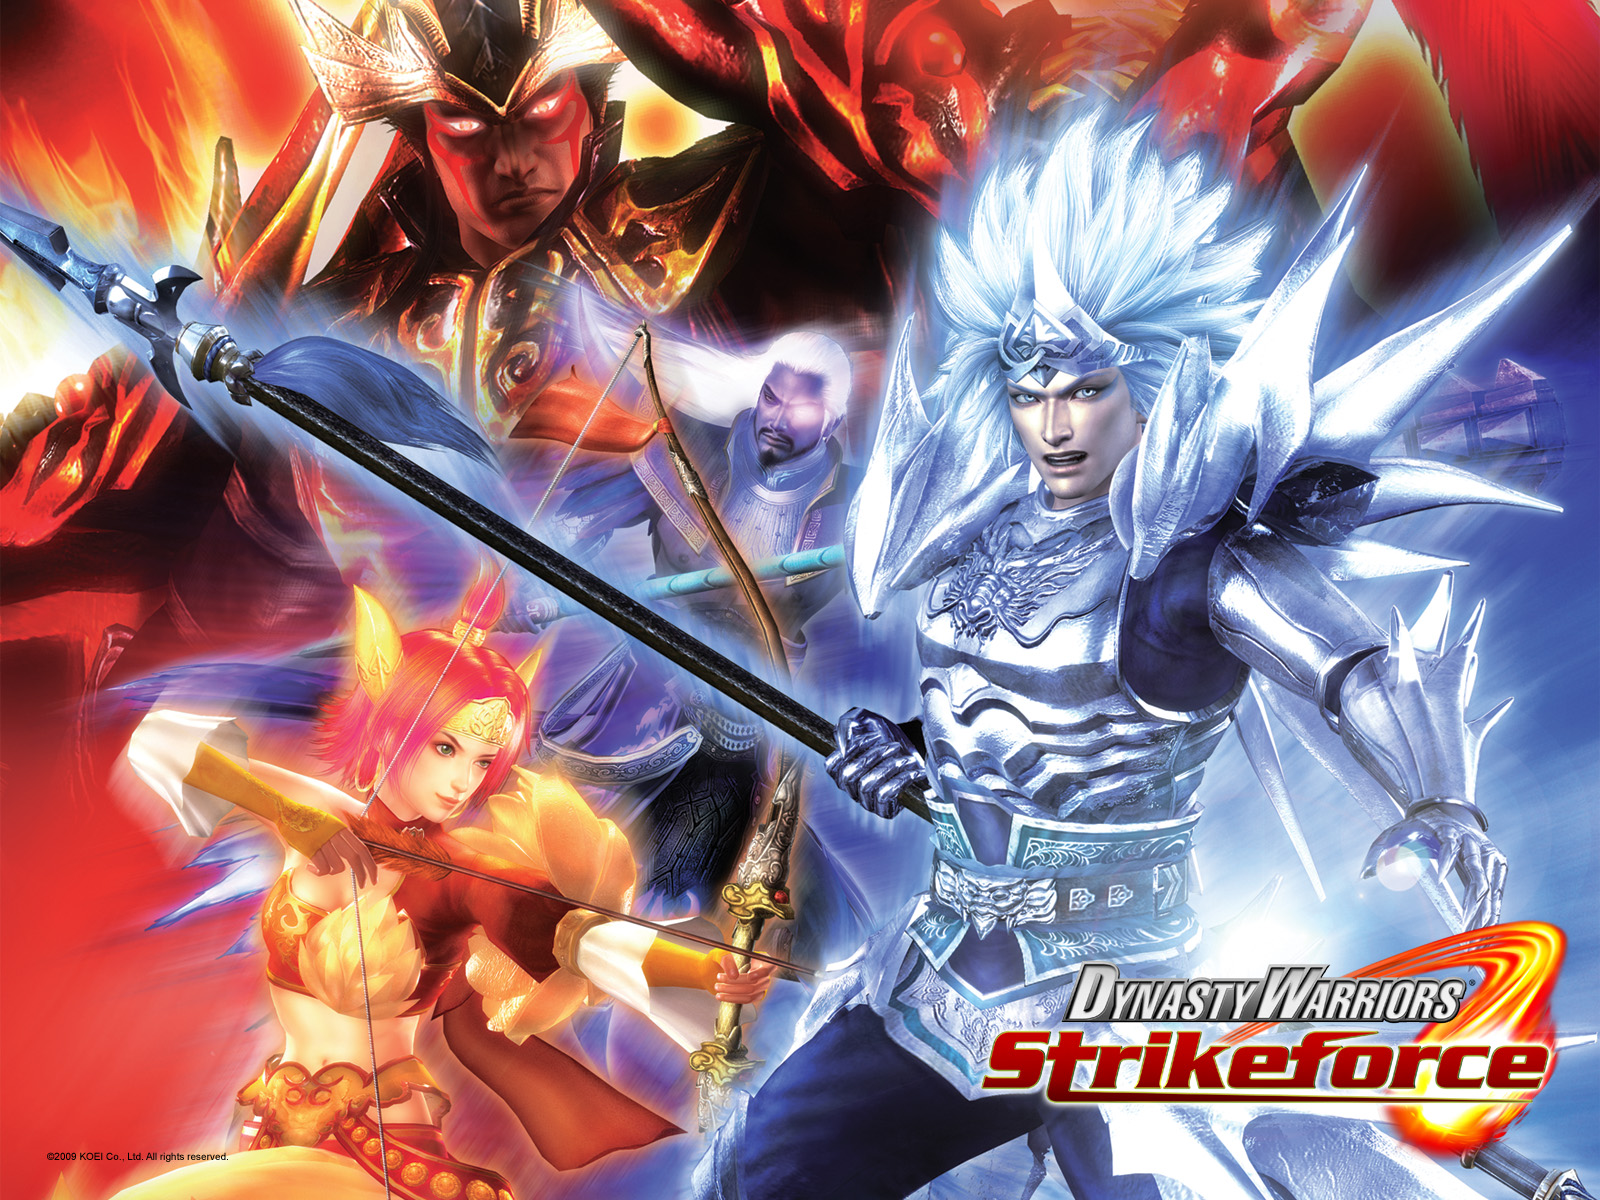 How to download dynasty warriors strikeforce ppsspp on pc psp.